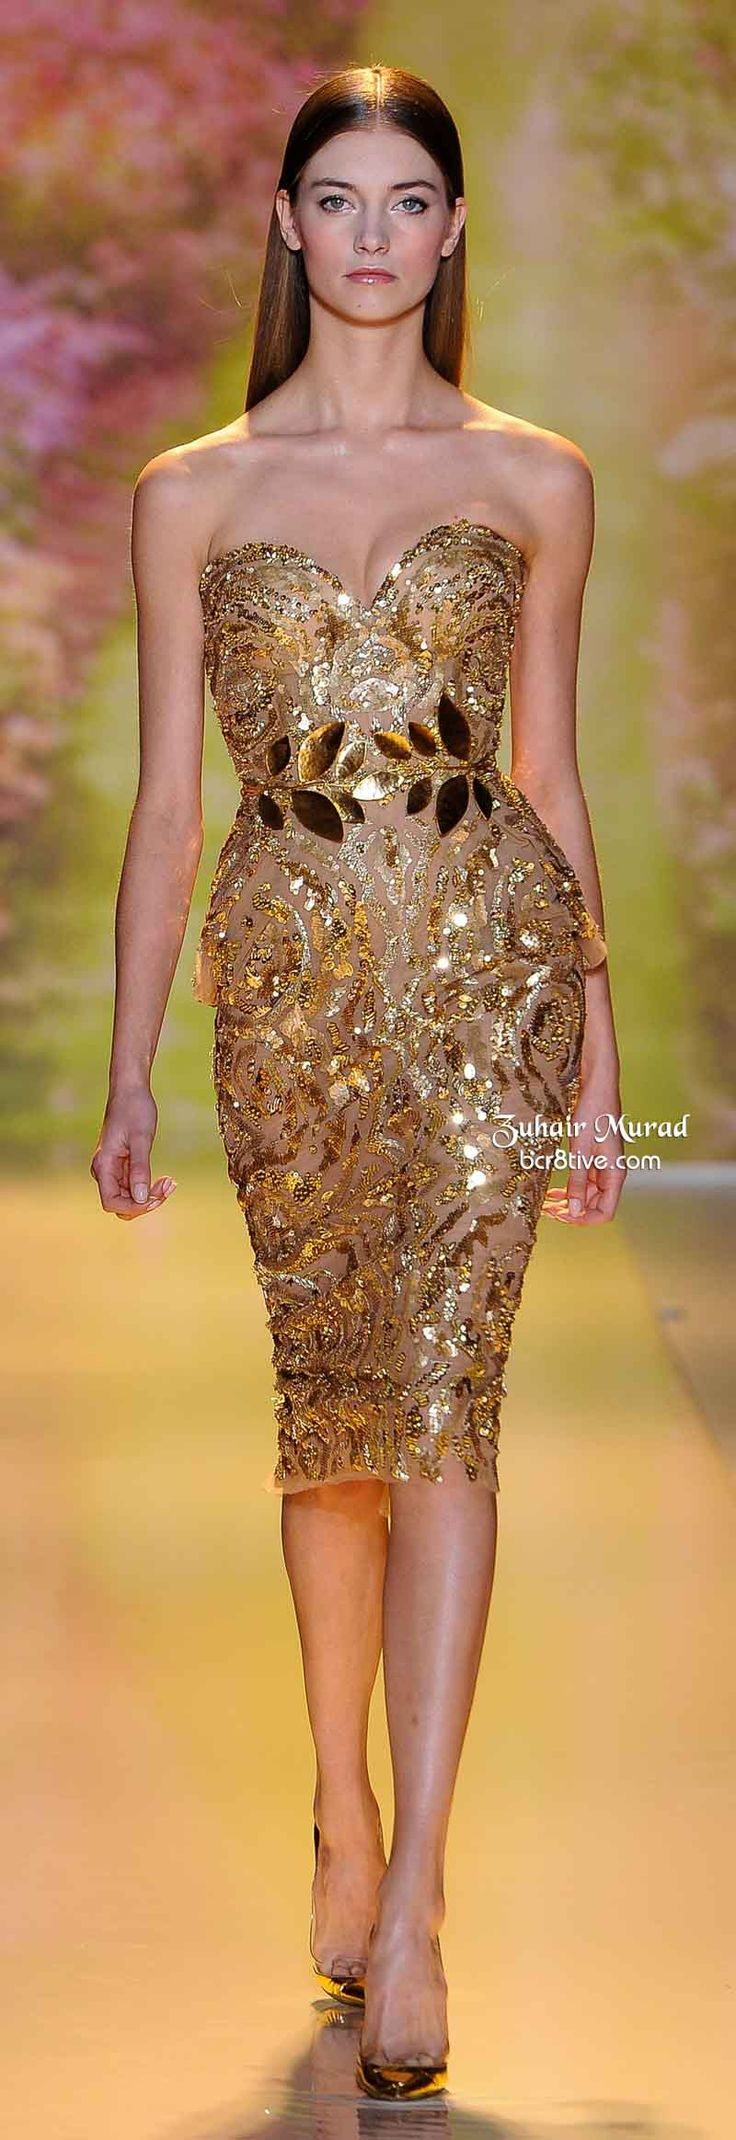 """Any celeb who loves her curves would look so amazing in this dress!   Fashion Police would have a """"Bitch Stole My Look"""" segment with this gold mini.  I could see Jennifer Hudson, Sofia Vergara, Kim Kardashian, JLo or Jessica Simpson rocking it.  I would remove the belt and keep the shoe.   For hair, it could be worn in an up-do to make it look more elegant, or total glamorous wavy bombshell curls.   Zuhair Murad Spring 2014 Haute Couture"""